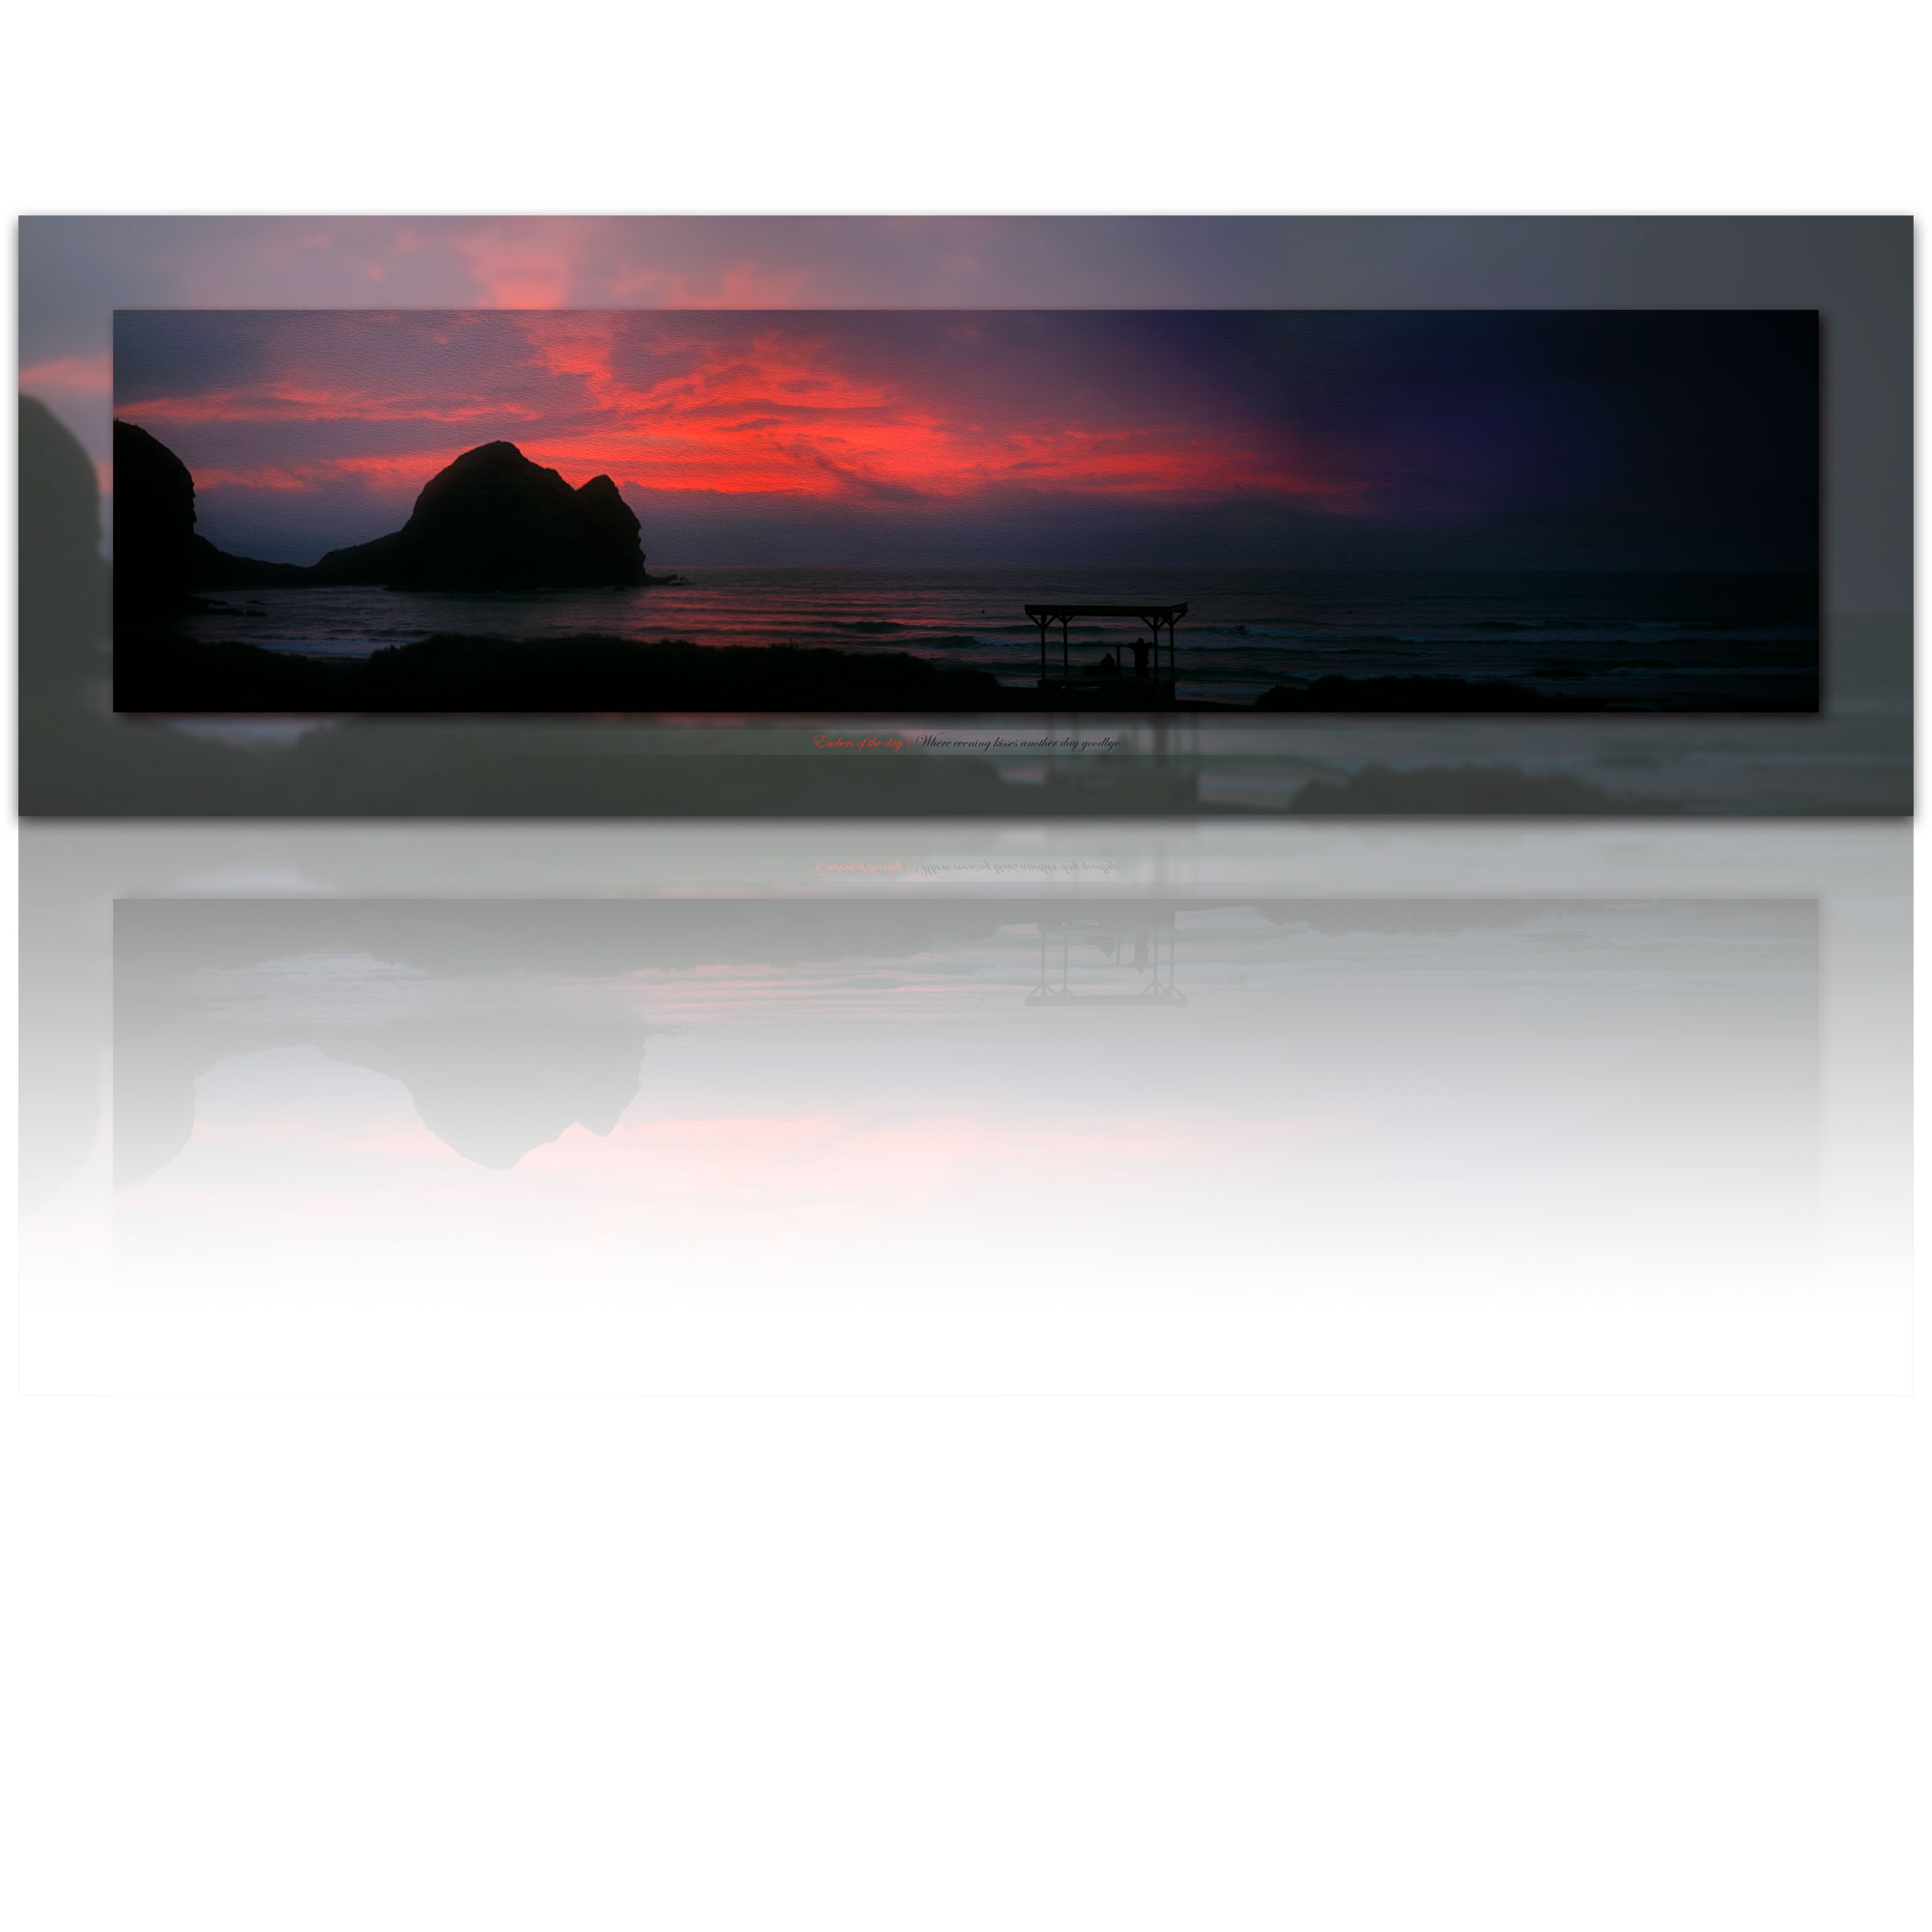 Piha sunset - Embers of the day - photo art